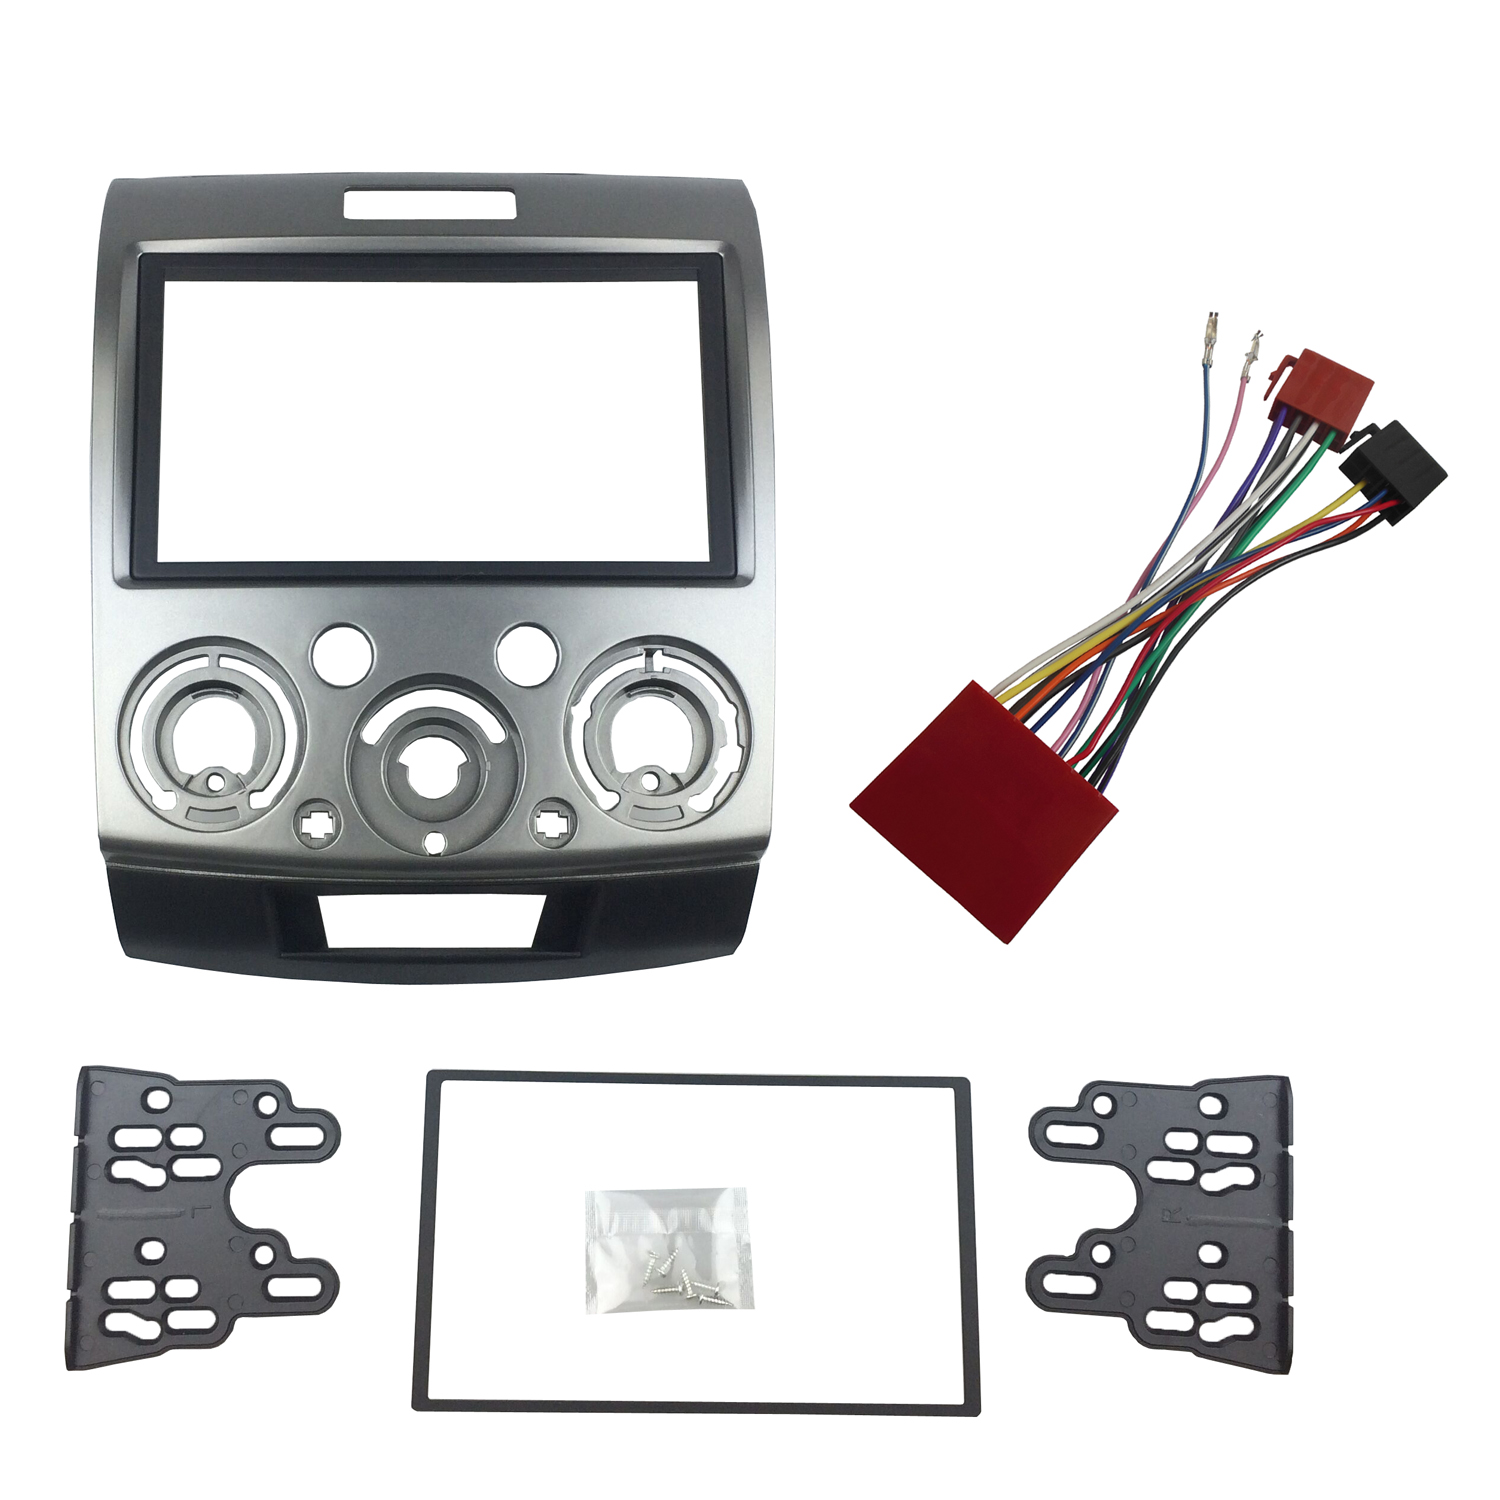 ford wiring harnesses ford wiring harness reviews online shopping ford wiring harness double din stereo panel for ford everest